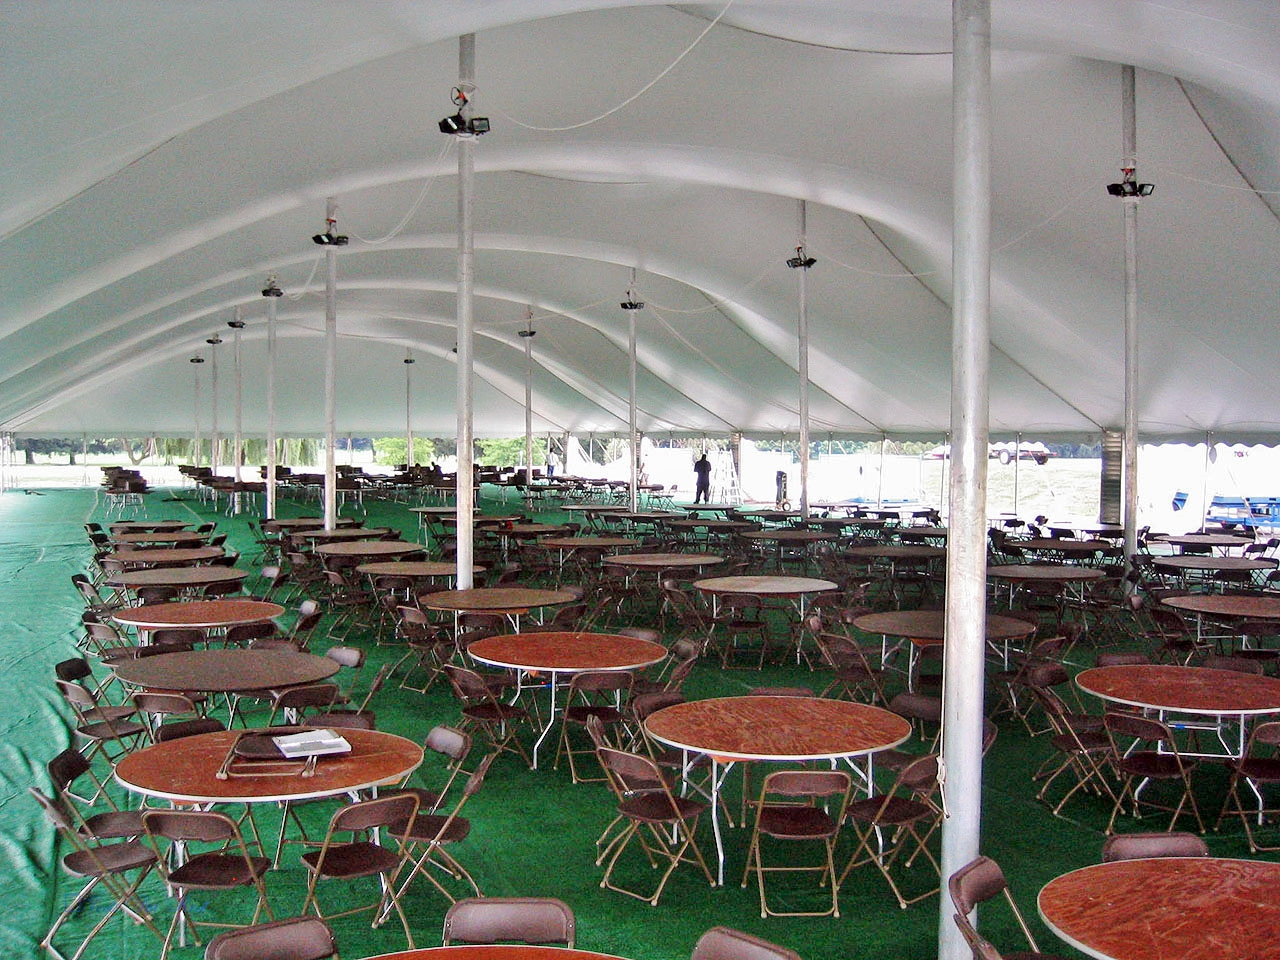 Brown chairs, round tables and flooring to rent for your tent event